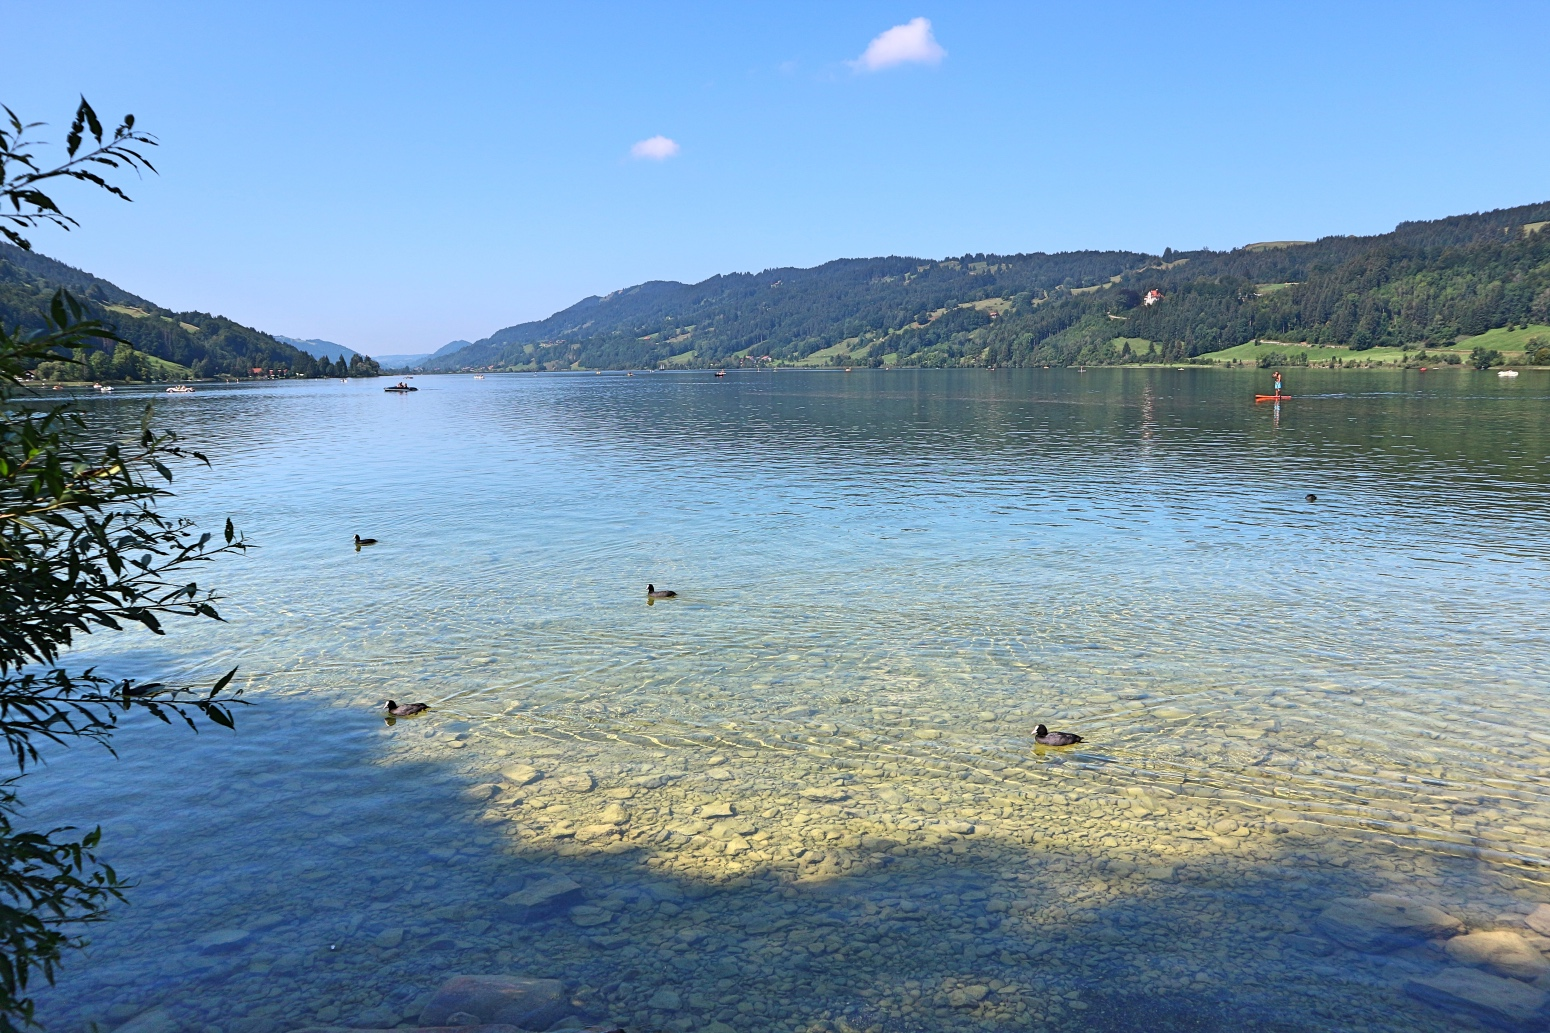 Alpsee in Immenstadt